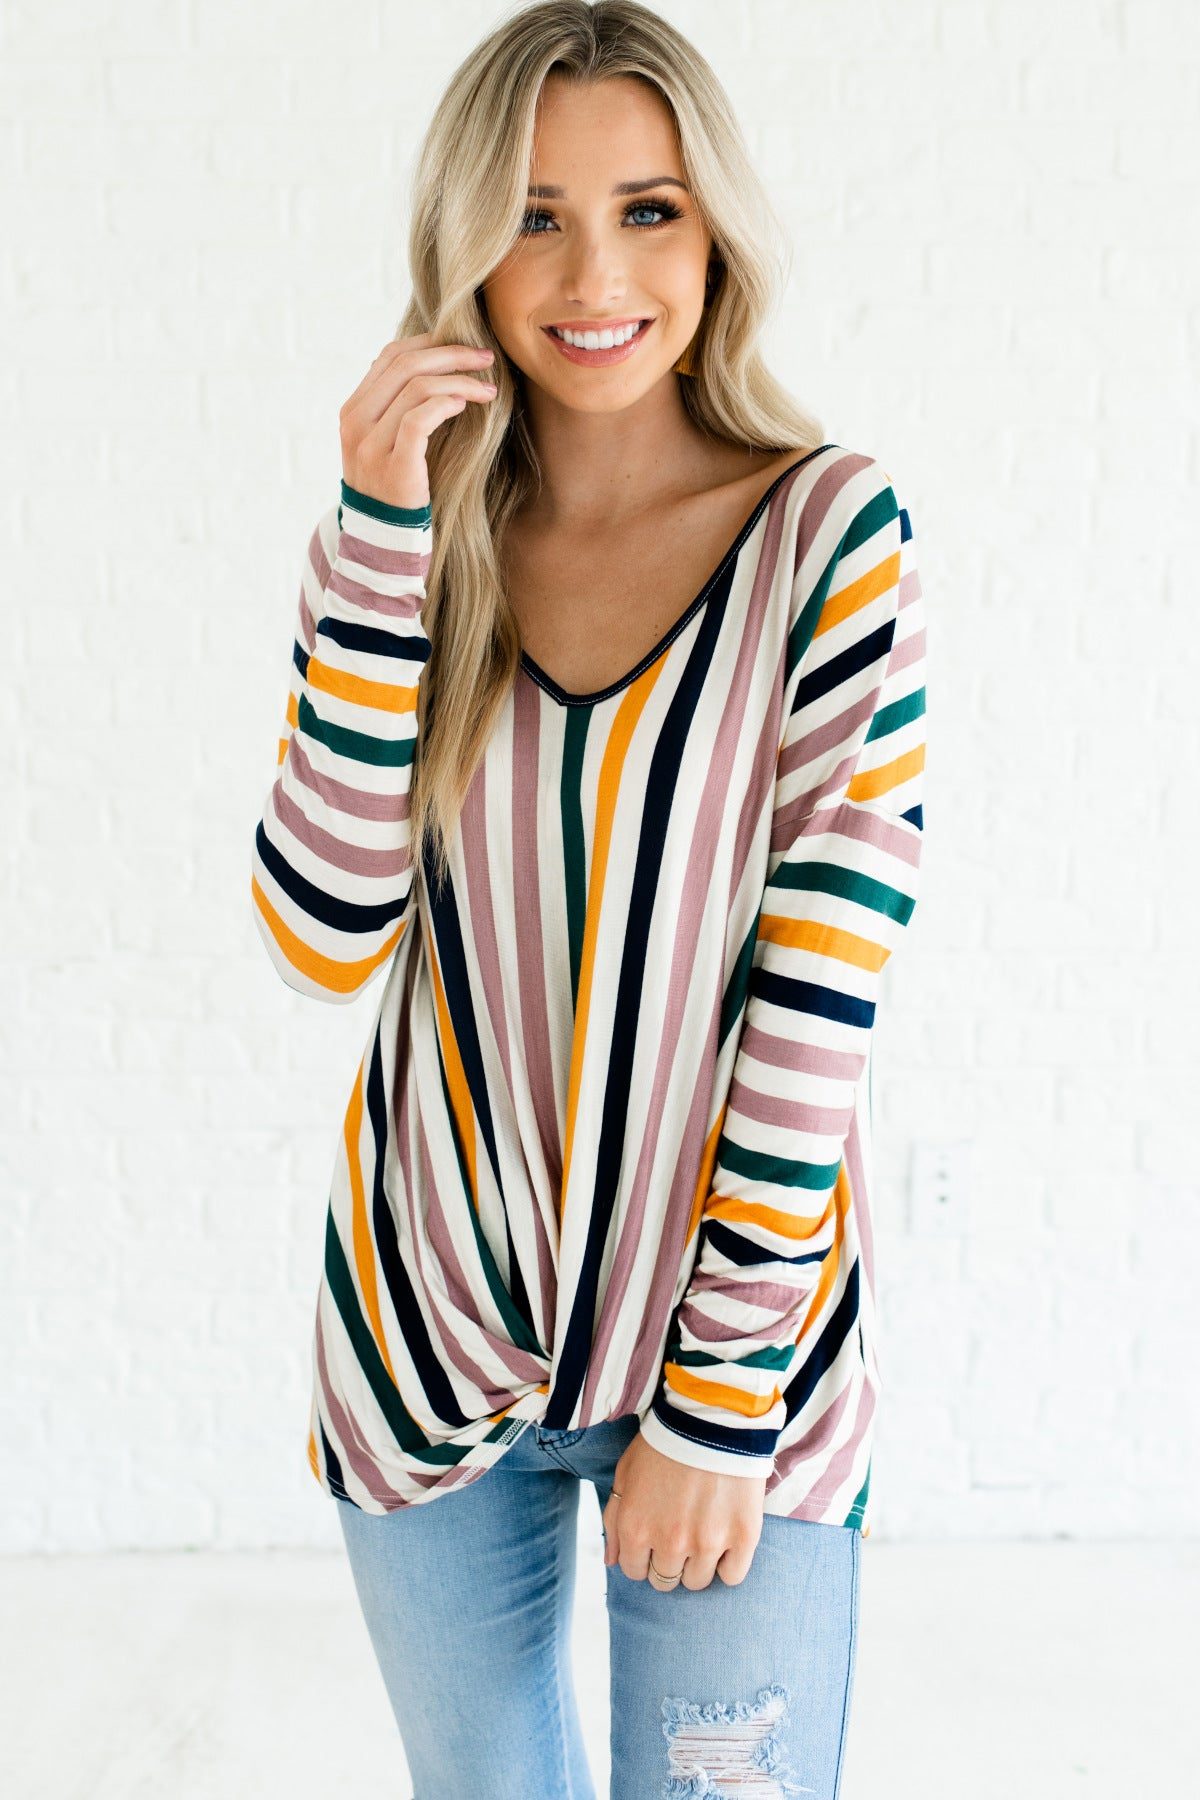 Cream Lavender Purple Teal Green Orange Navy Striped Oversized Knot Tops for Women